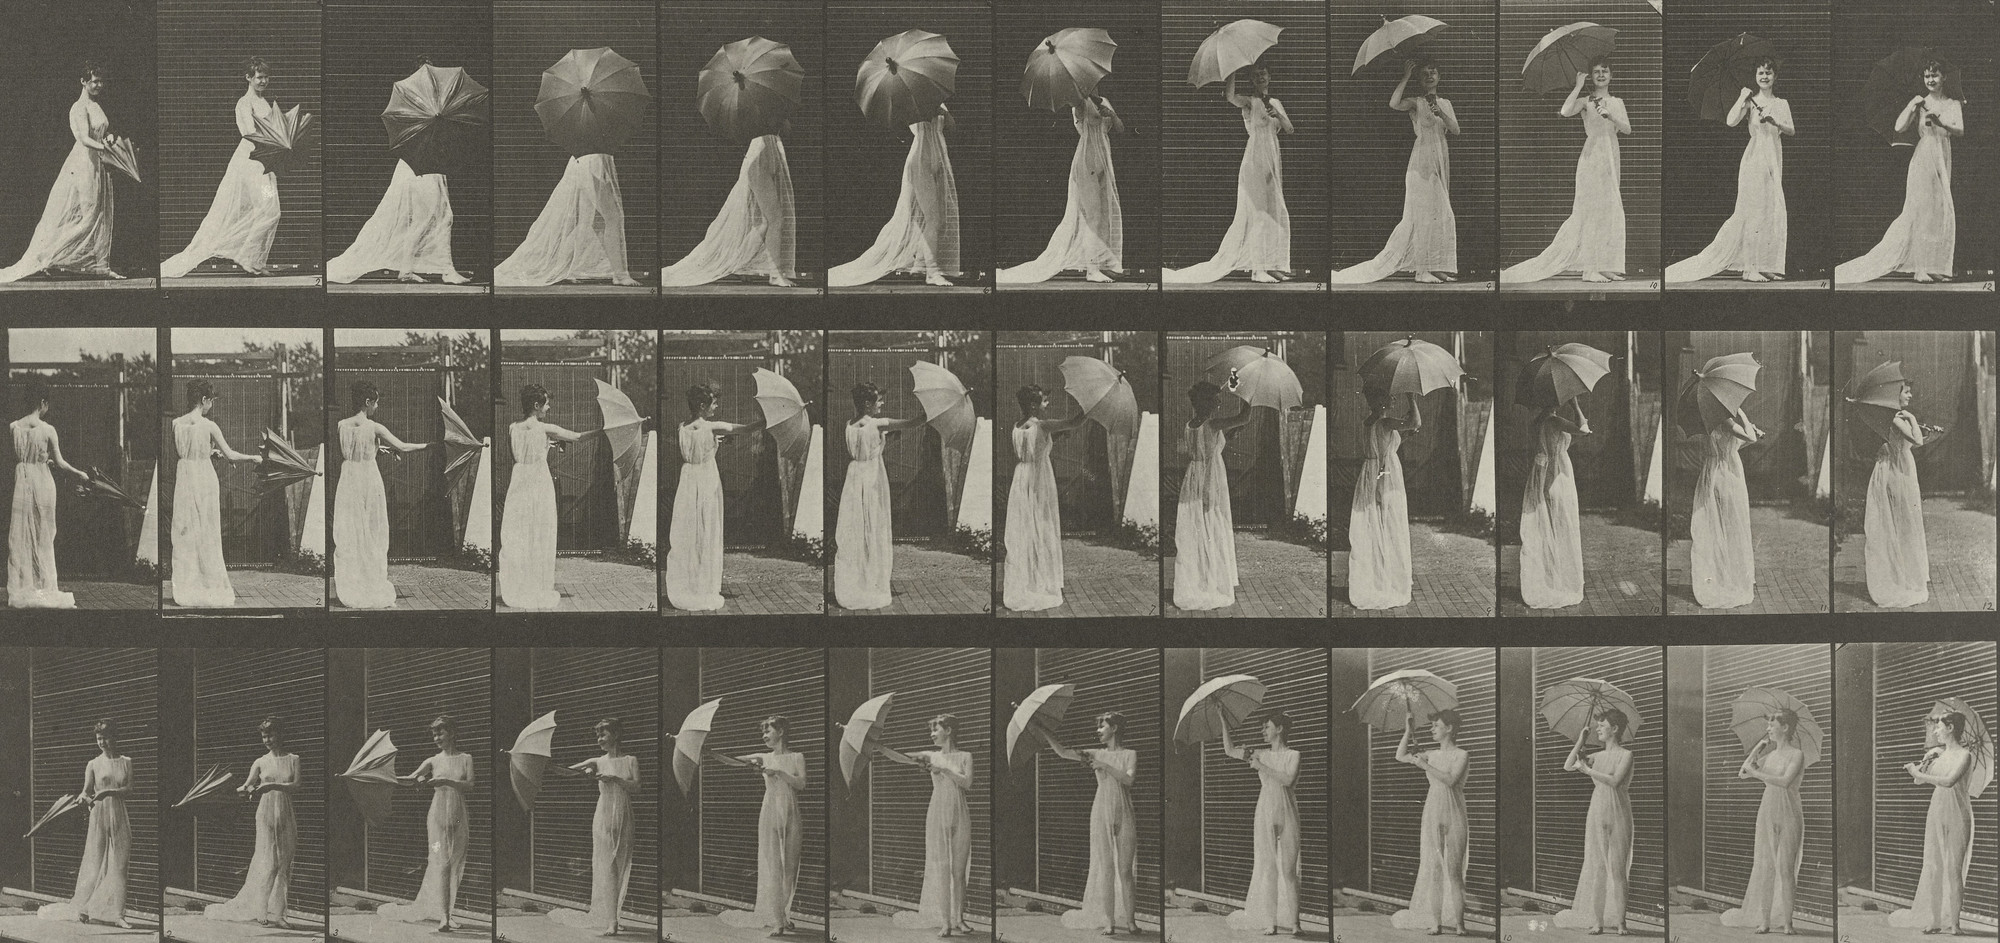 Eadweard J. Muybridge. Woman Opening a Parasol and Turning Around: Plate 461 from Animal Locomotion (1887). 1884-86